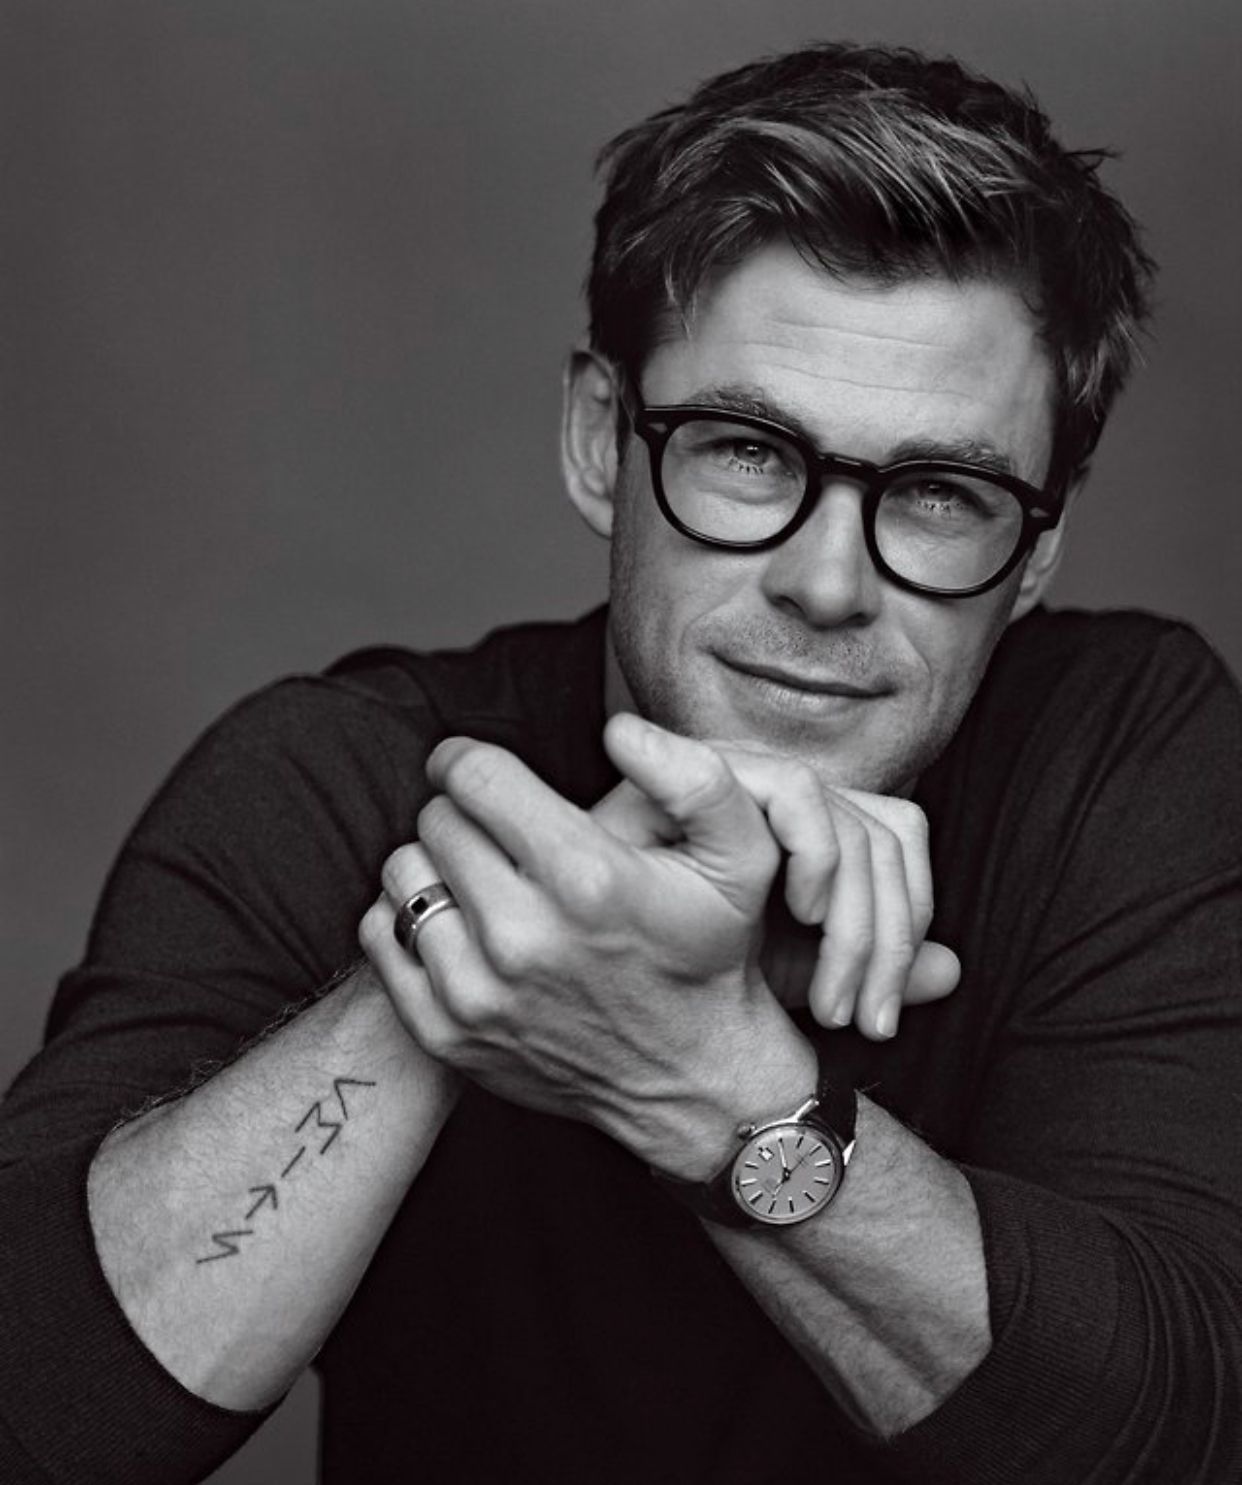 Chris Hemsworth Chris hemsworth tattoo, Chris hemsworth